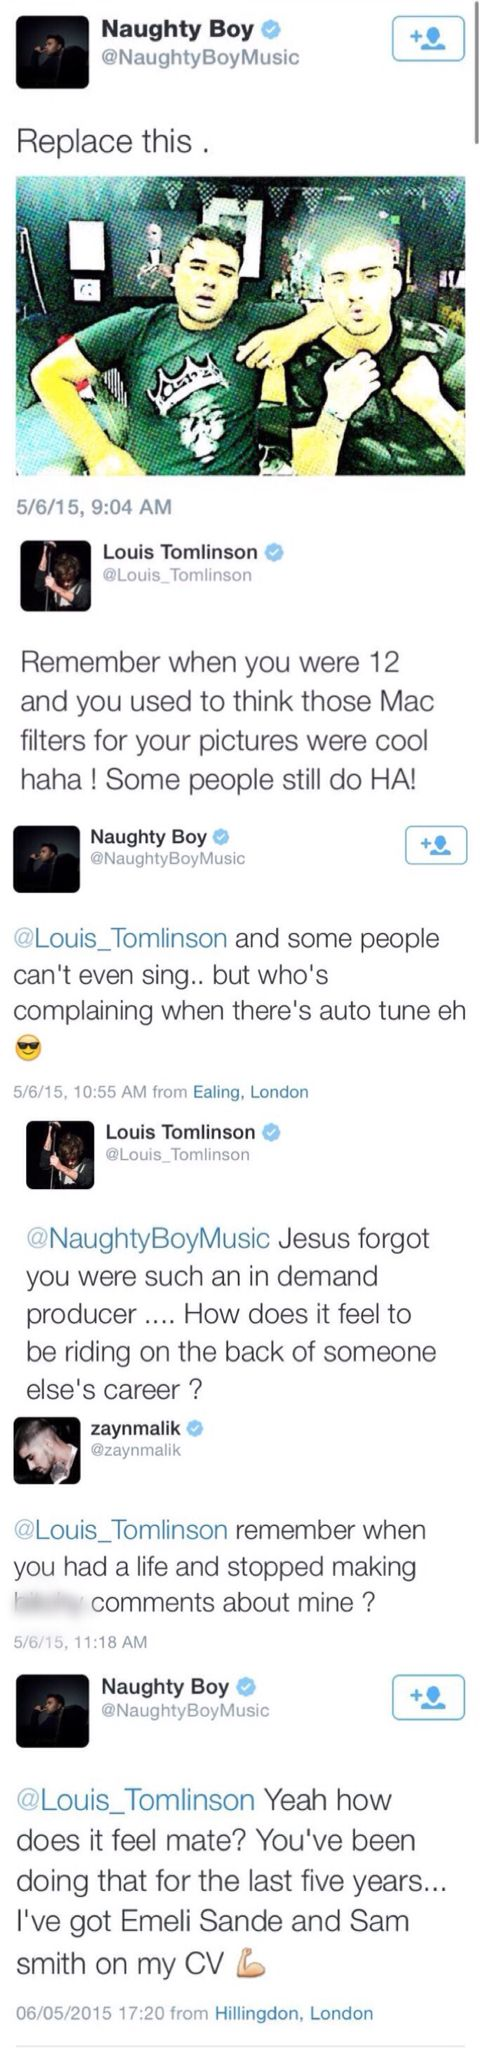 SLAY LOU!!! Zayn is such a jerk. Trying to be mean to his ex band member. Zayn needs a life.